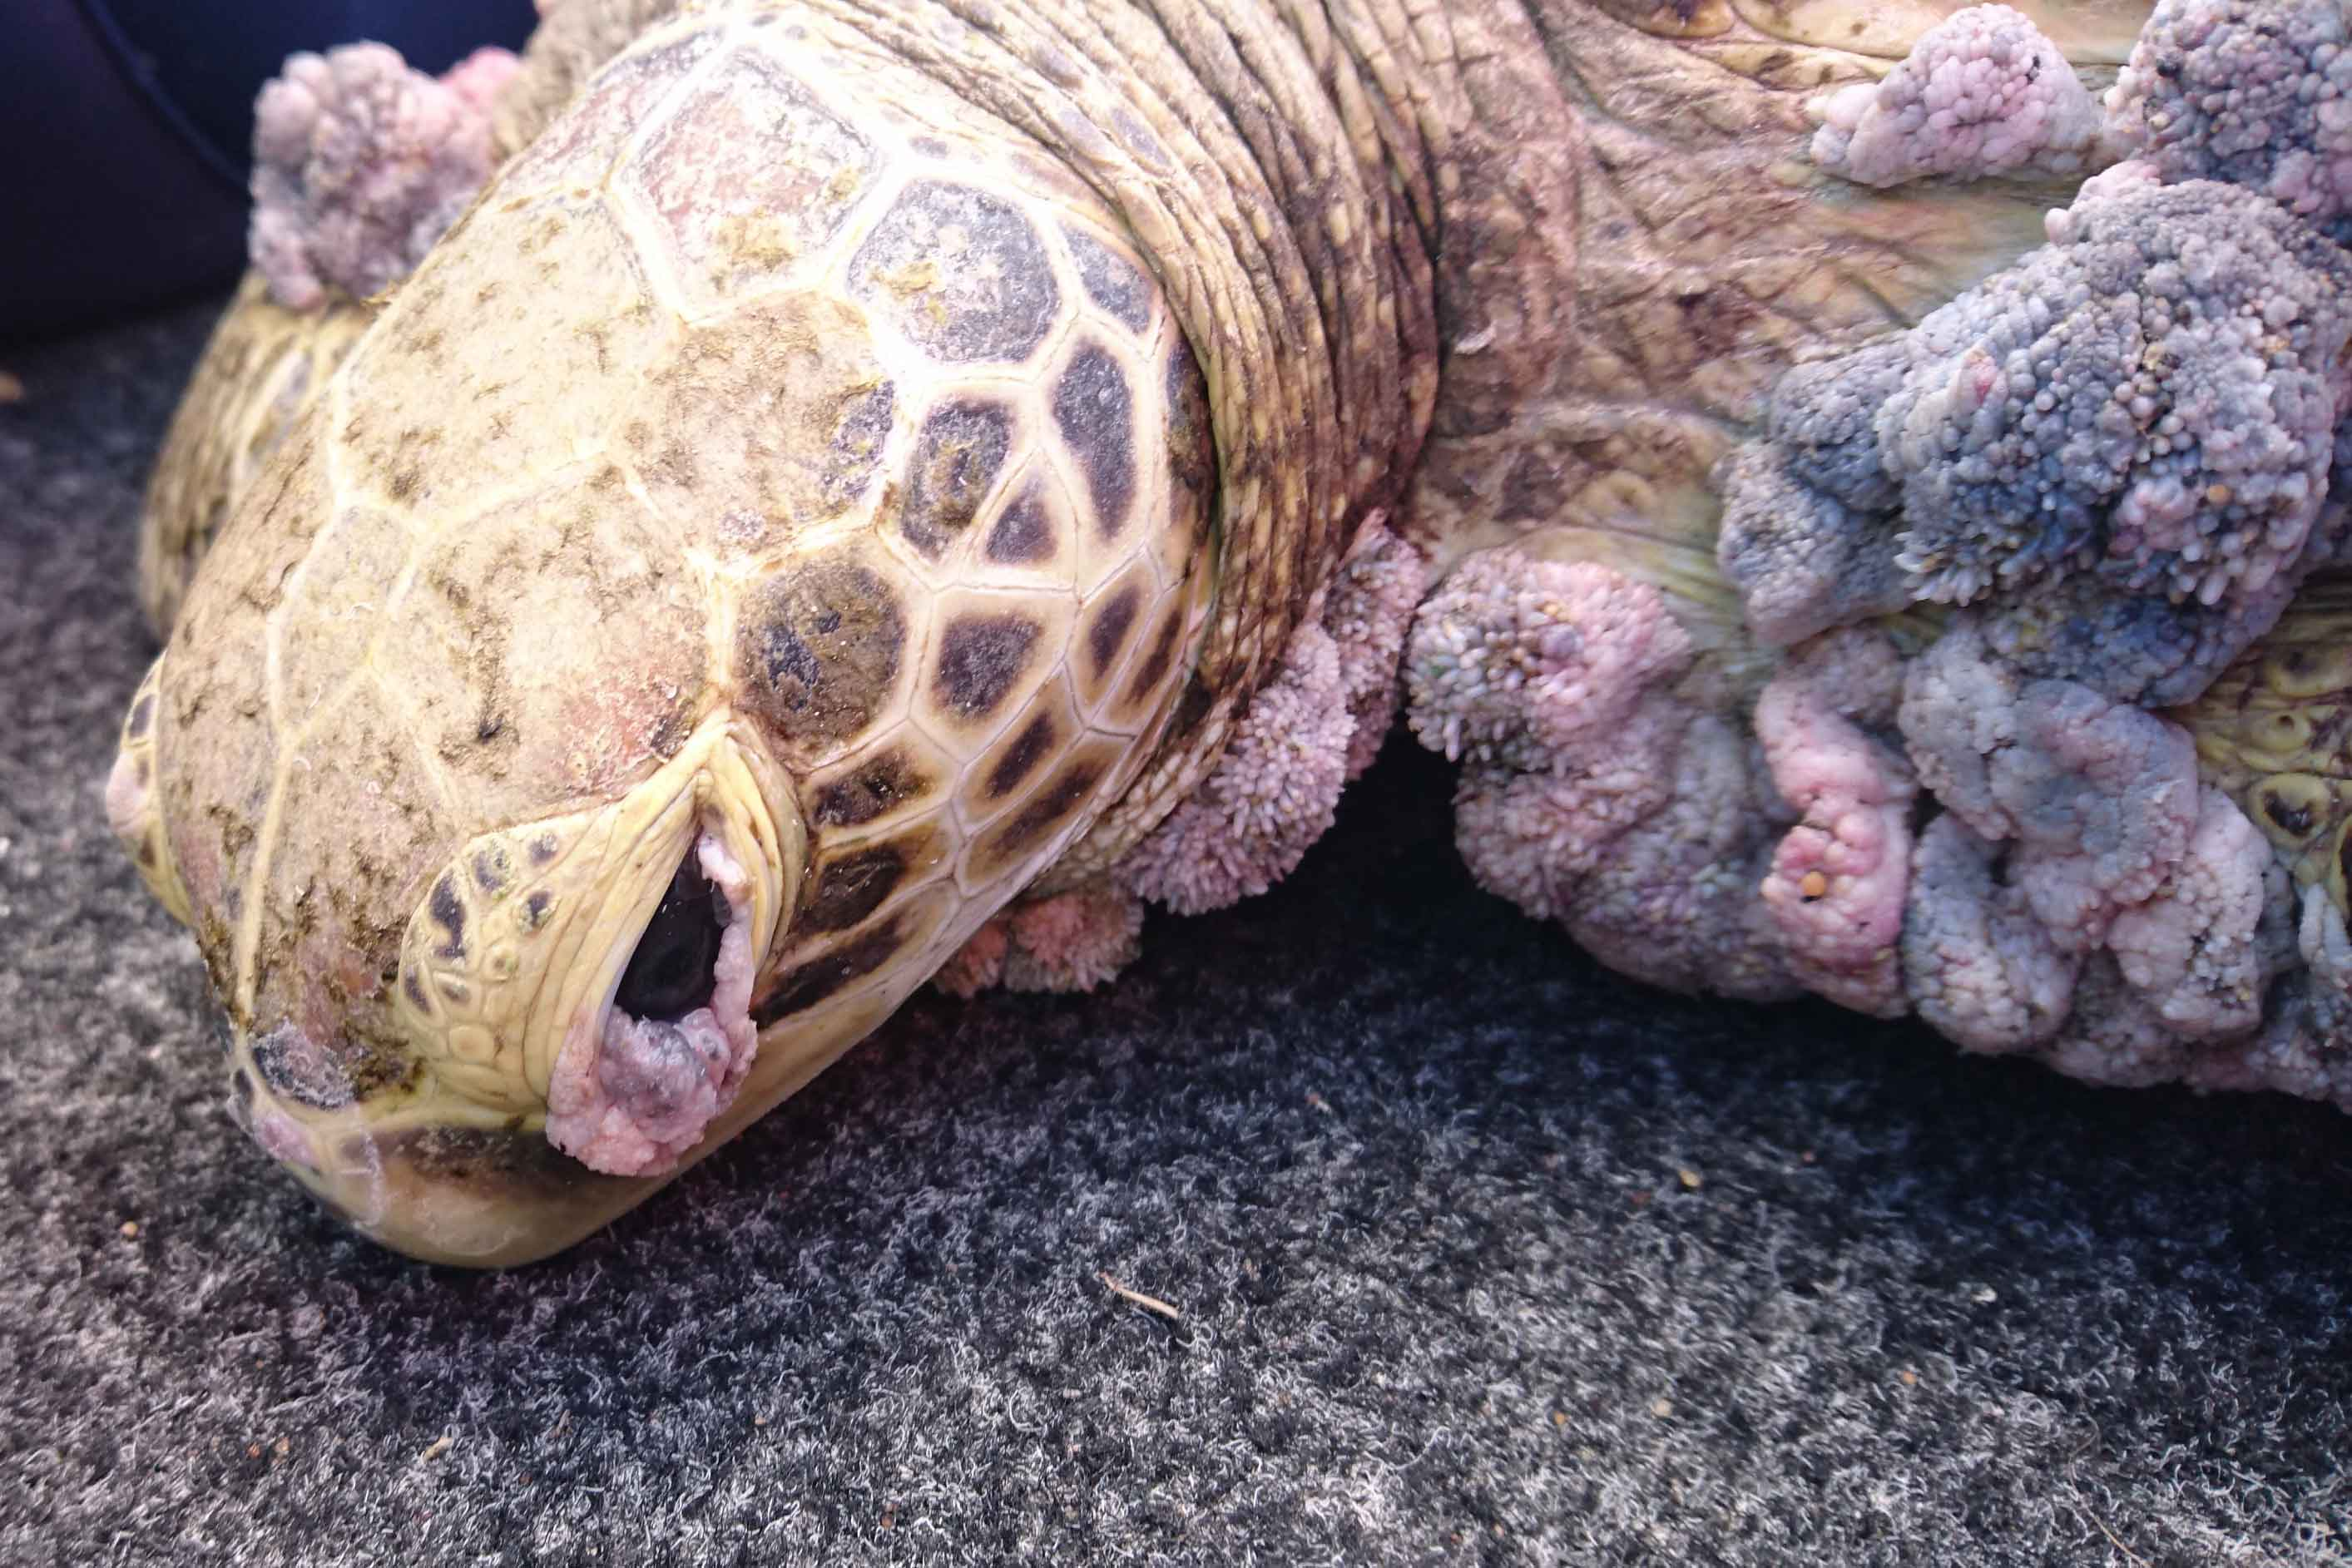 Turtle with many growths characteristic of fibropapillomatosis